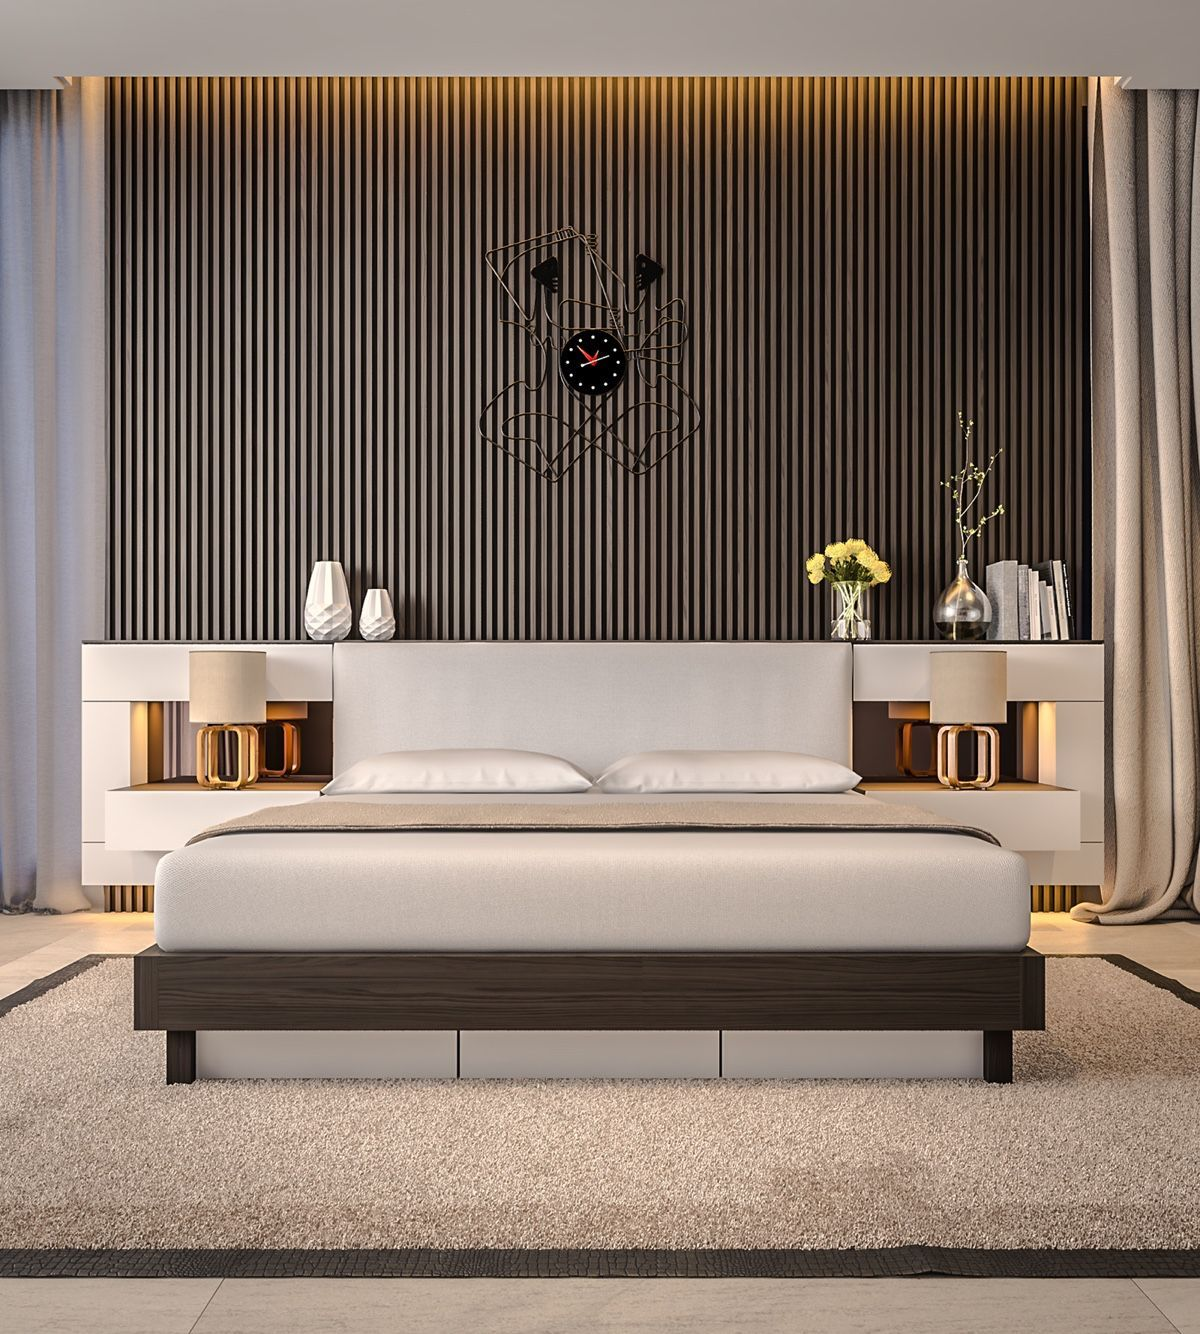 Make Sleeptime Luxurious With These 4 Stunning Bedroom Spaces Remodel Bedroom Luxurious Bedrooms Modern Bedroom